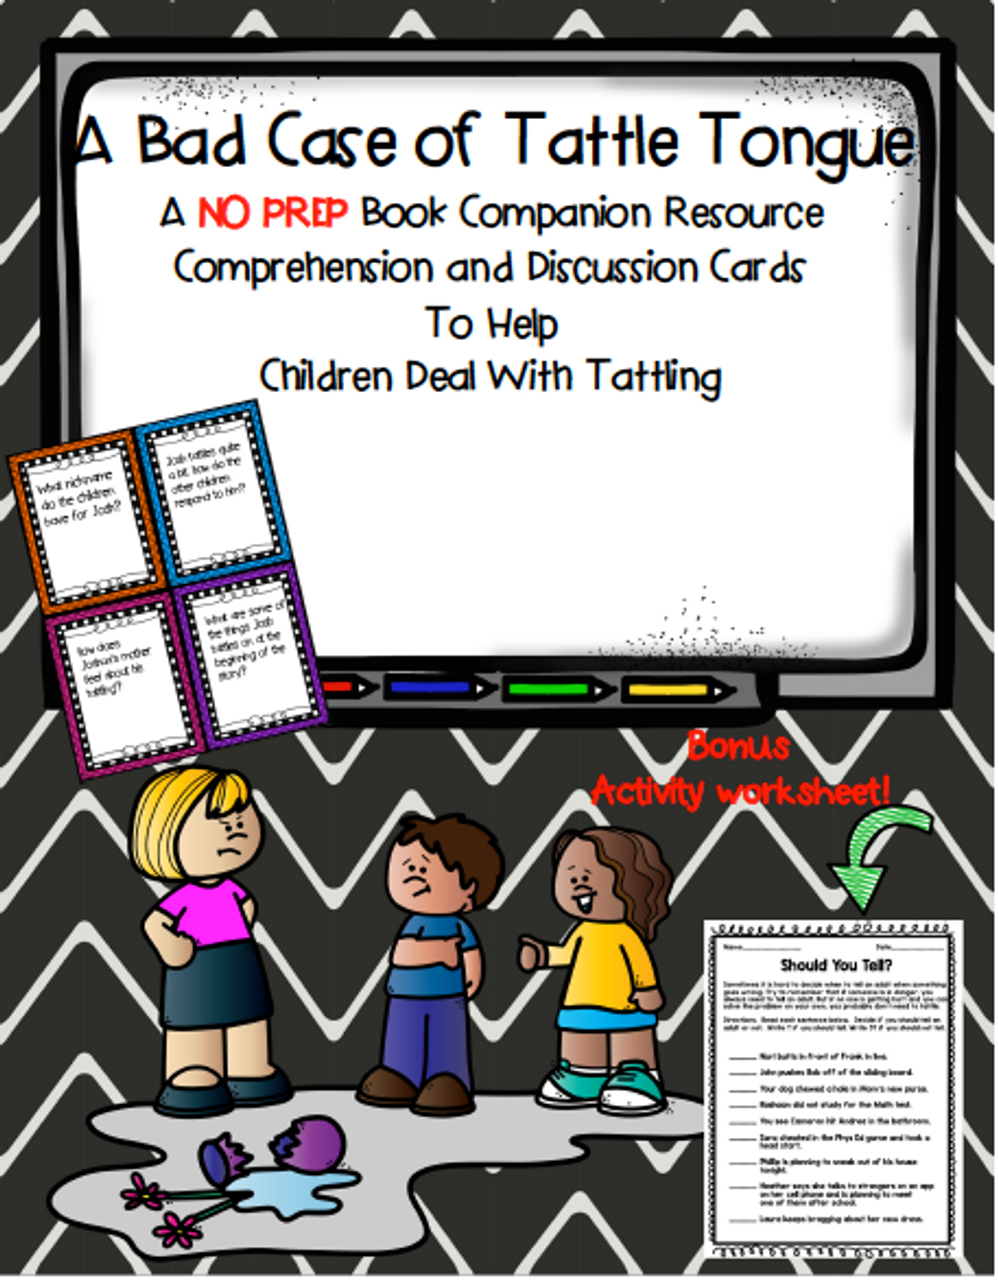 A Bad Case of Tattle Tongue by Julia Cook Story Extension Activity + Bonus